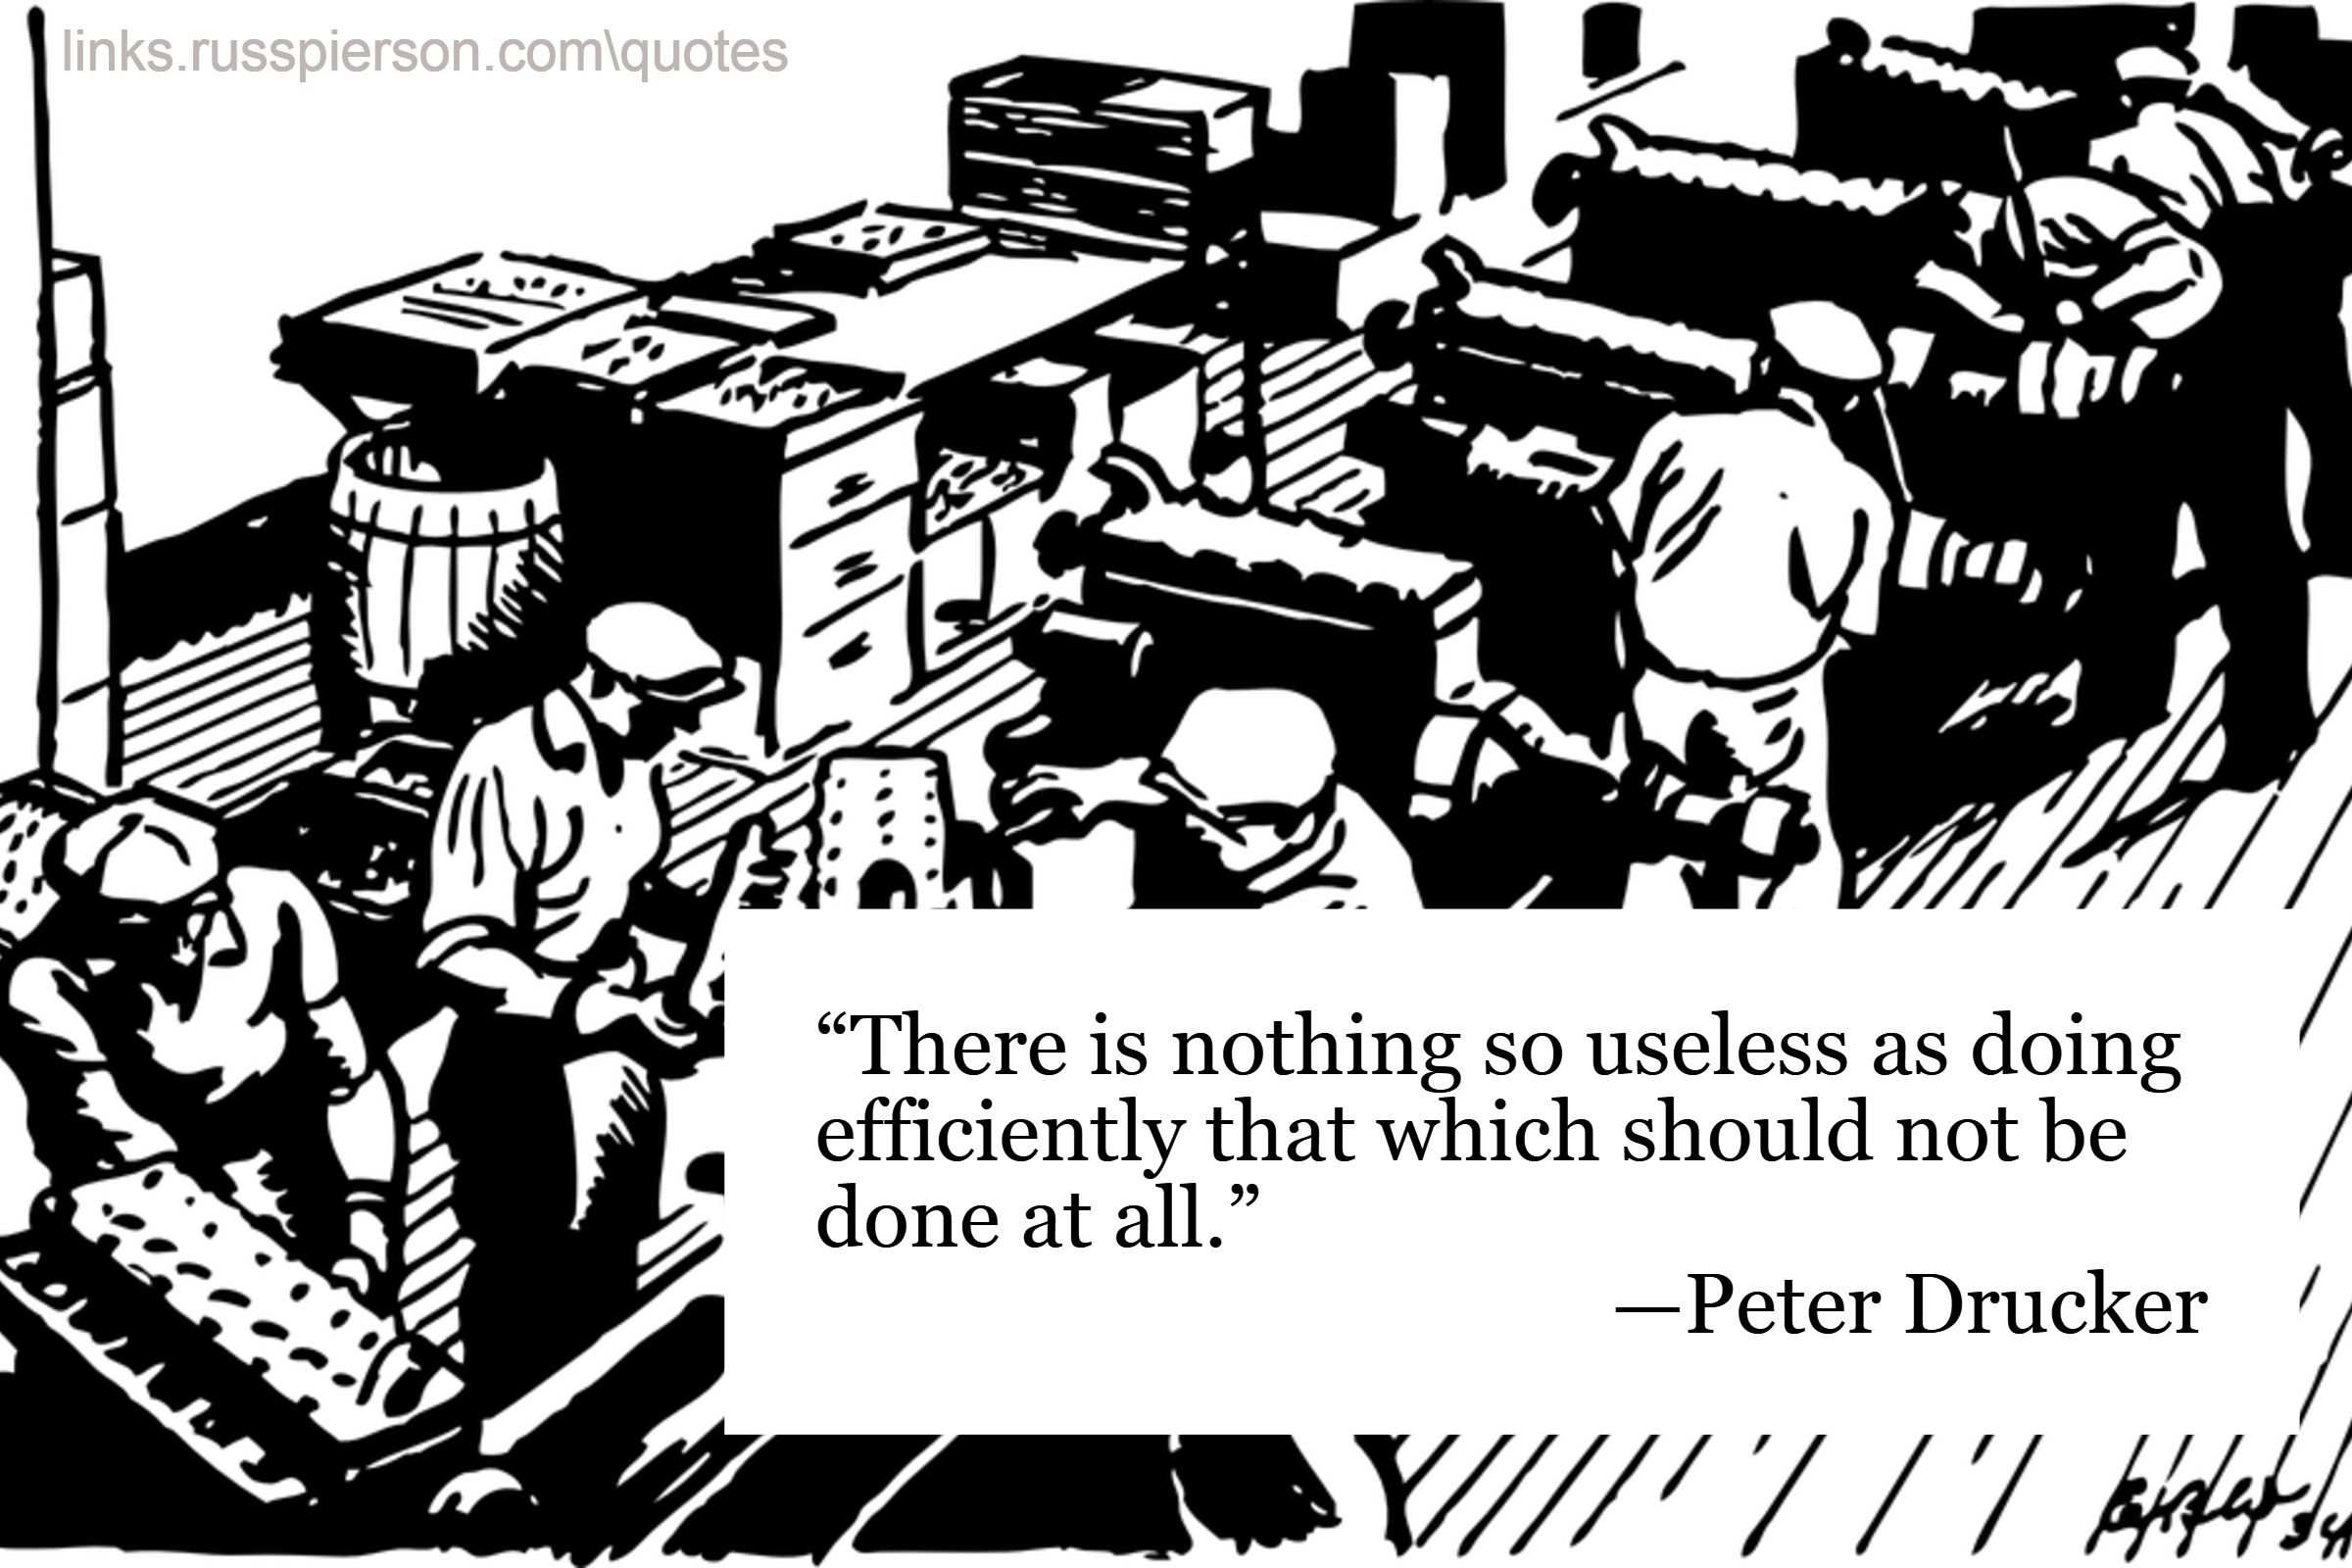 There is nothing so useless as doing efficiently that